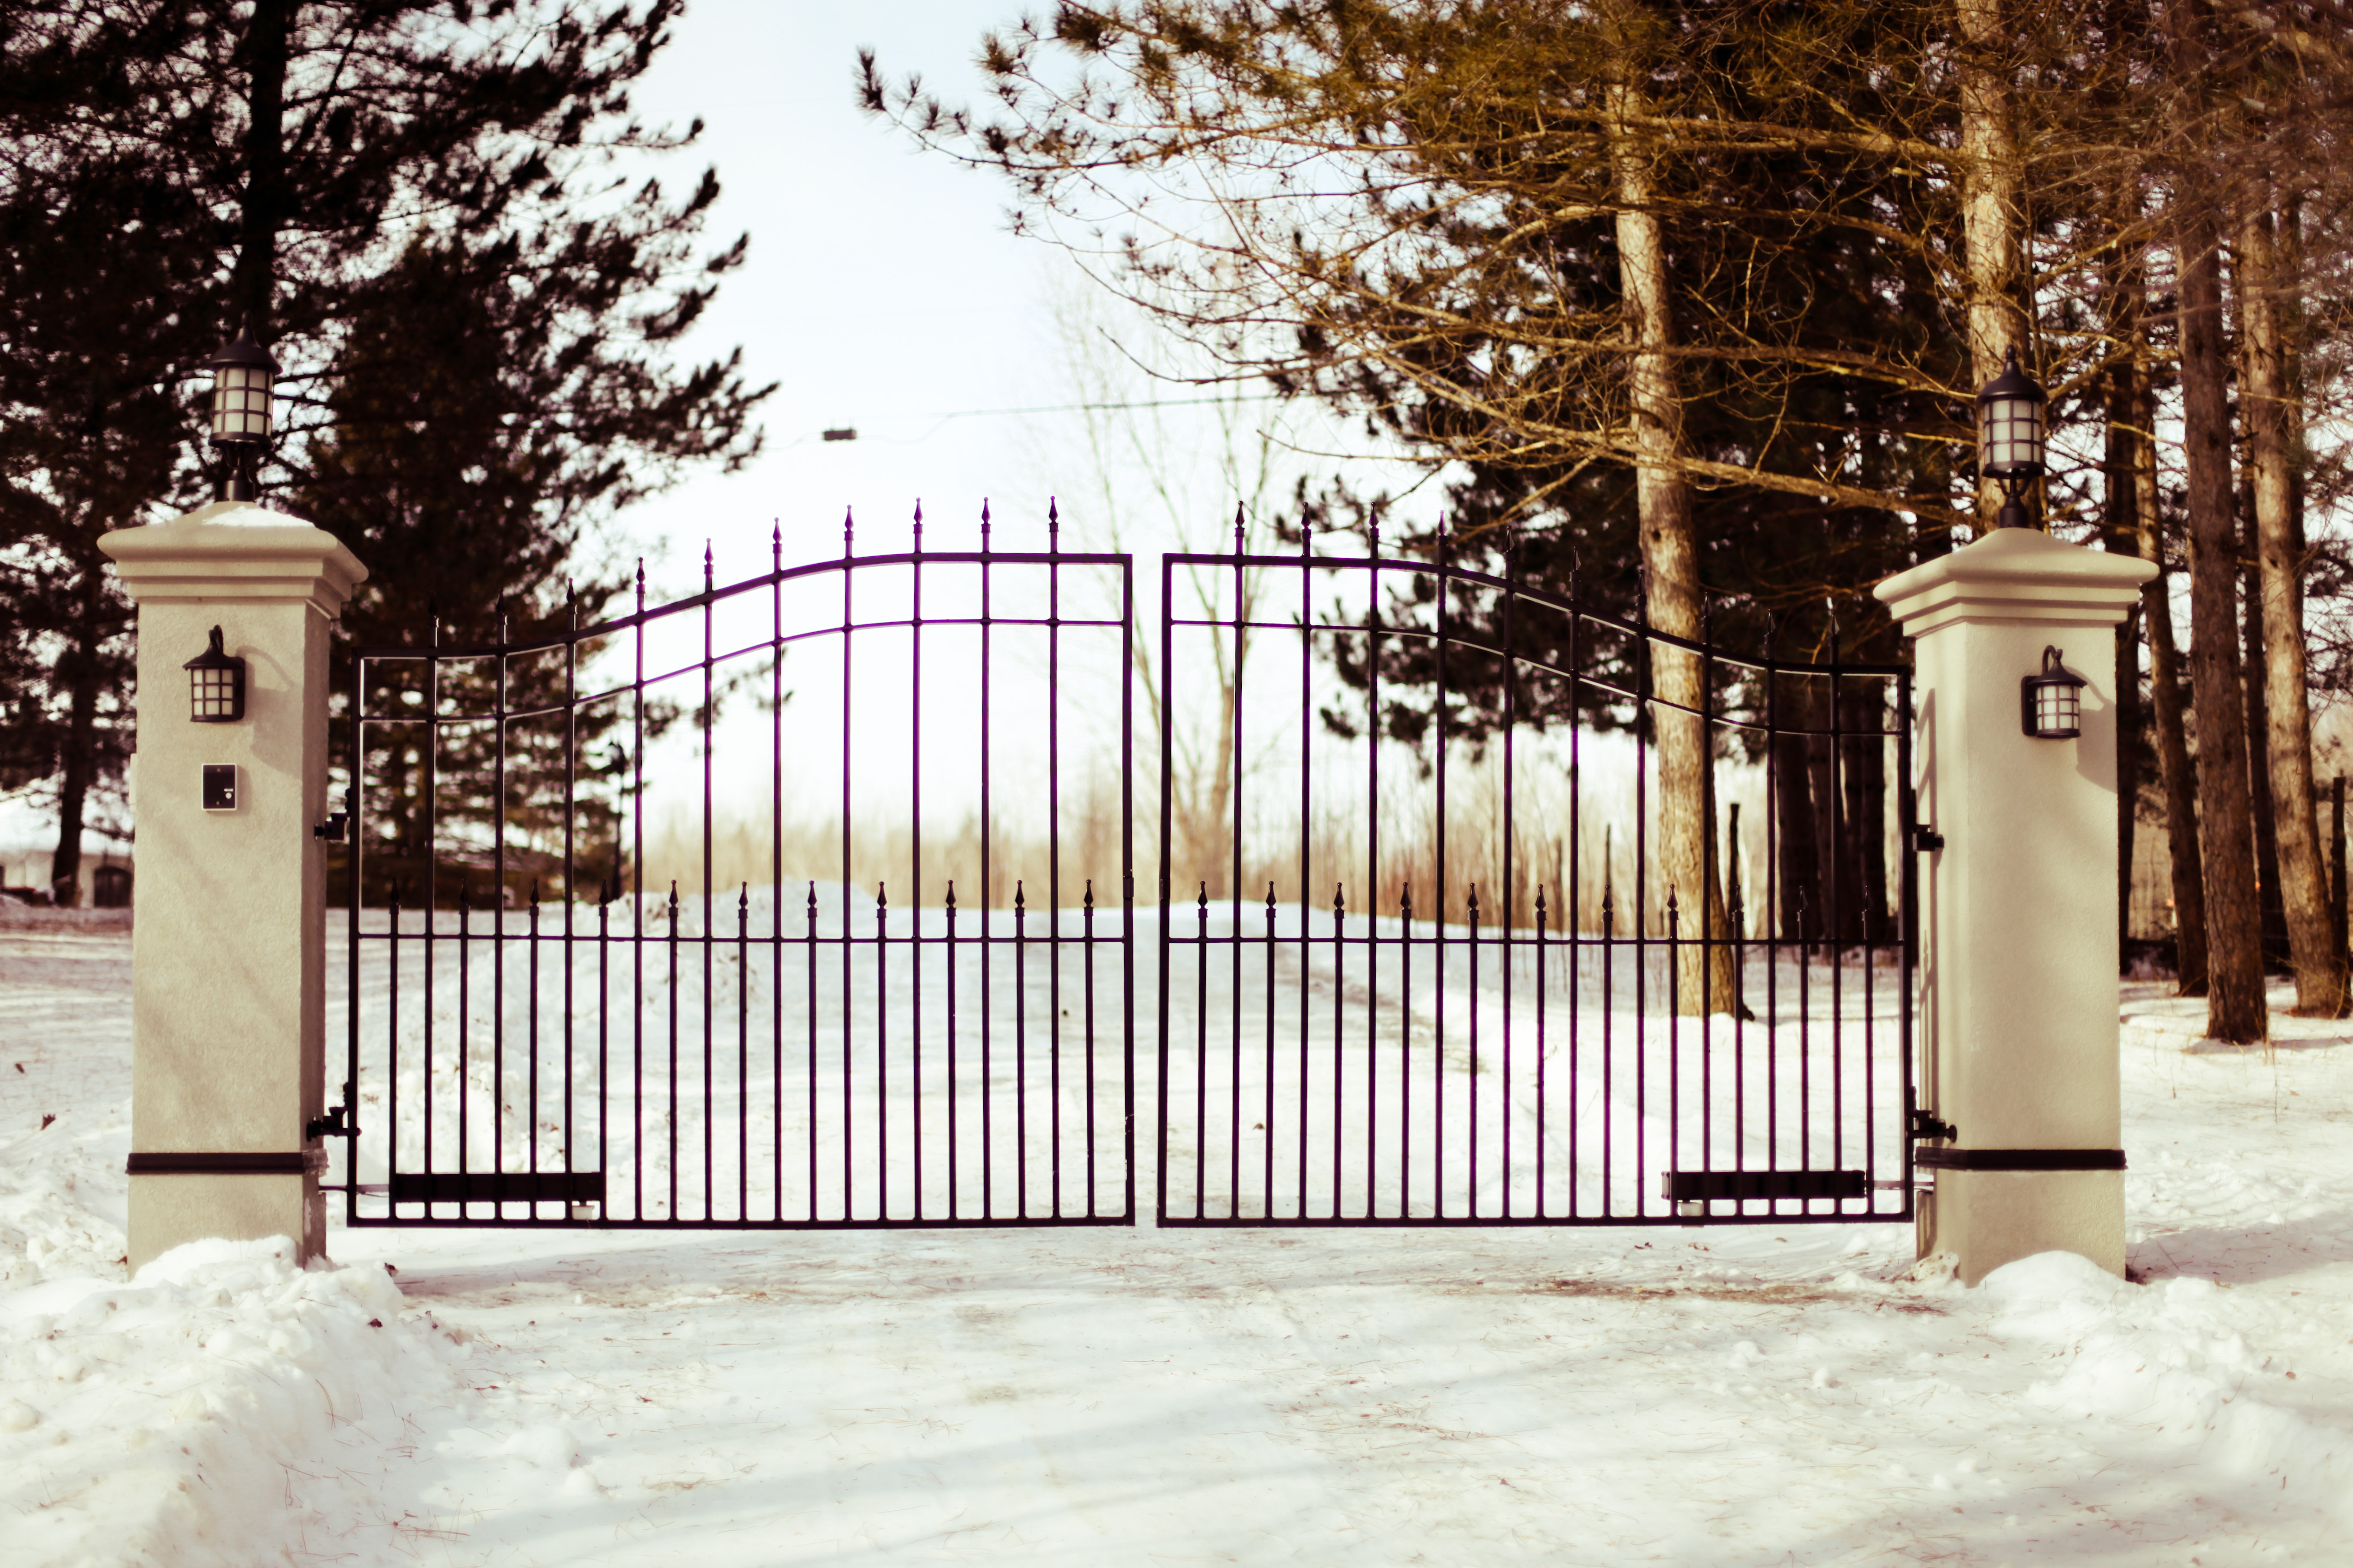 #28 | Winterized gates